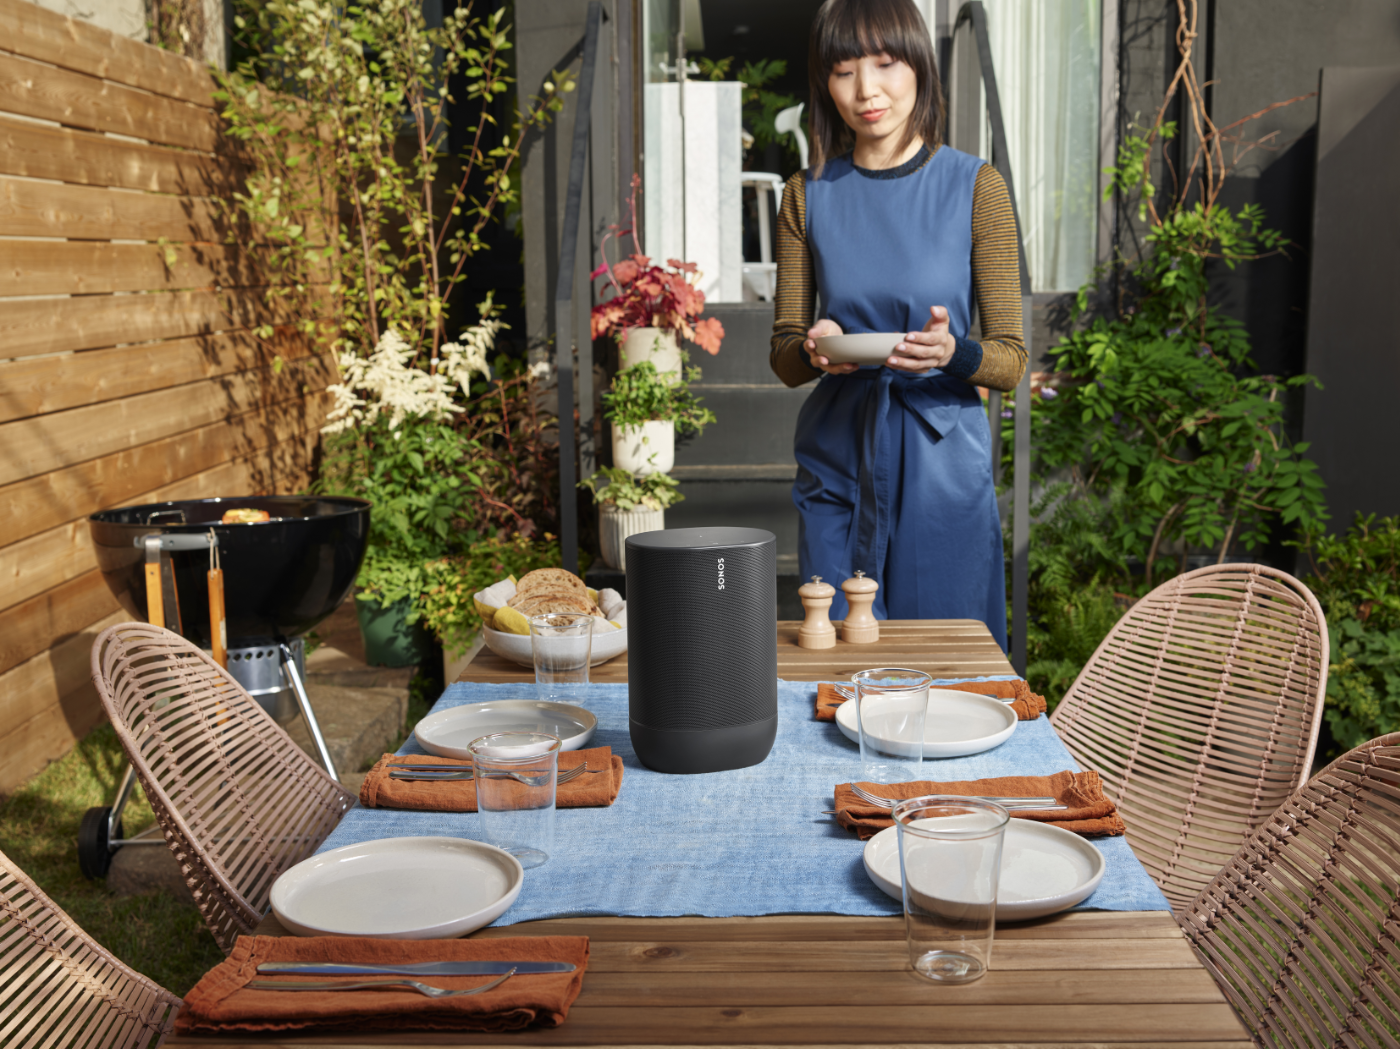 Move_Black-Lifestyle-Urban_Apartment__Outdoor_Dining-with_Cast-Q3FY20_MST-MST_JPEG_fid109371